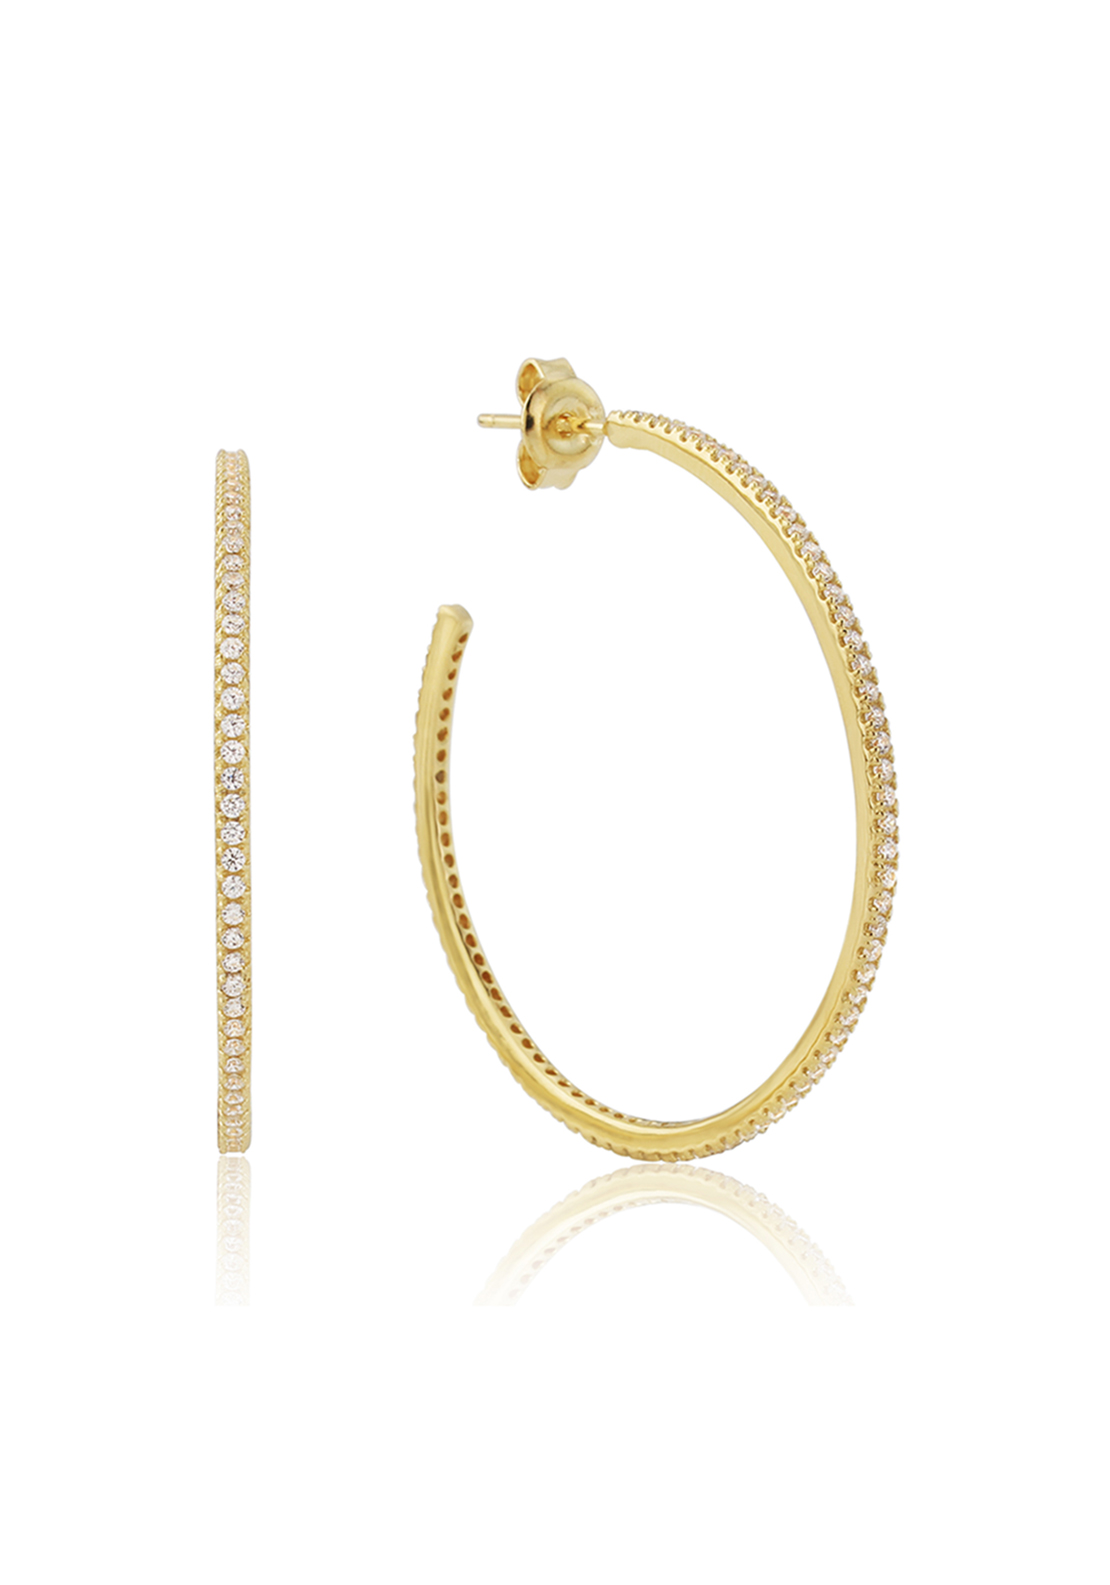 Waterford Crystal Pave Studded Hoop Earrings, Gold